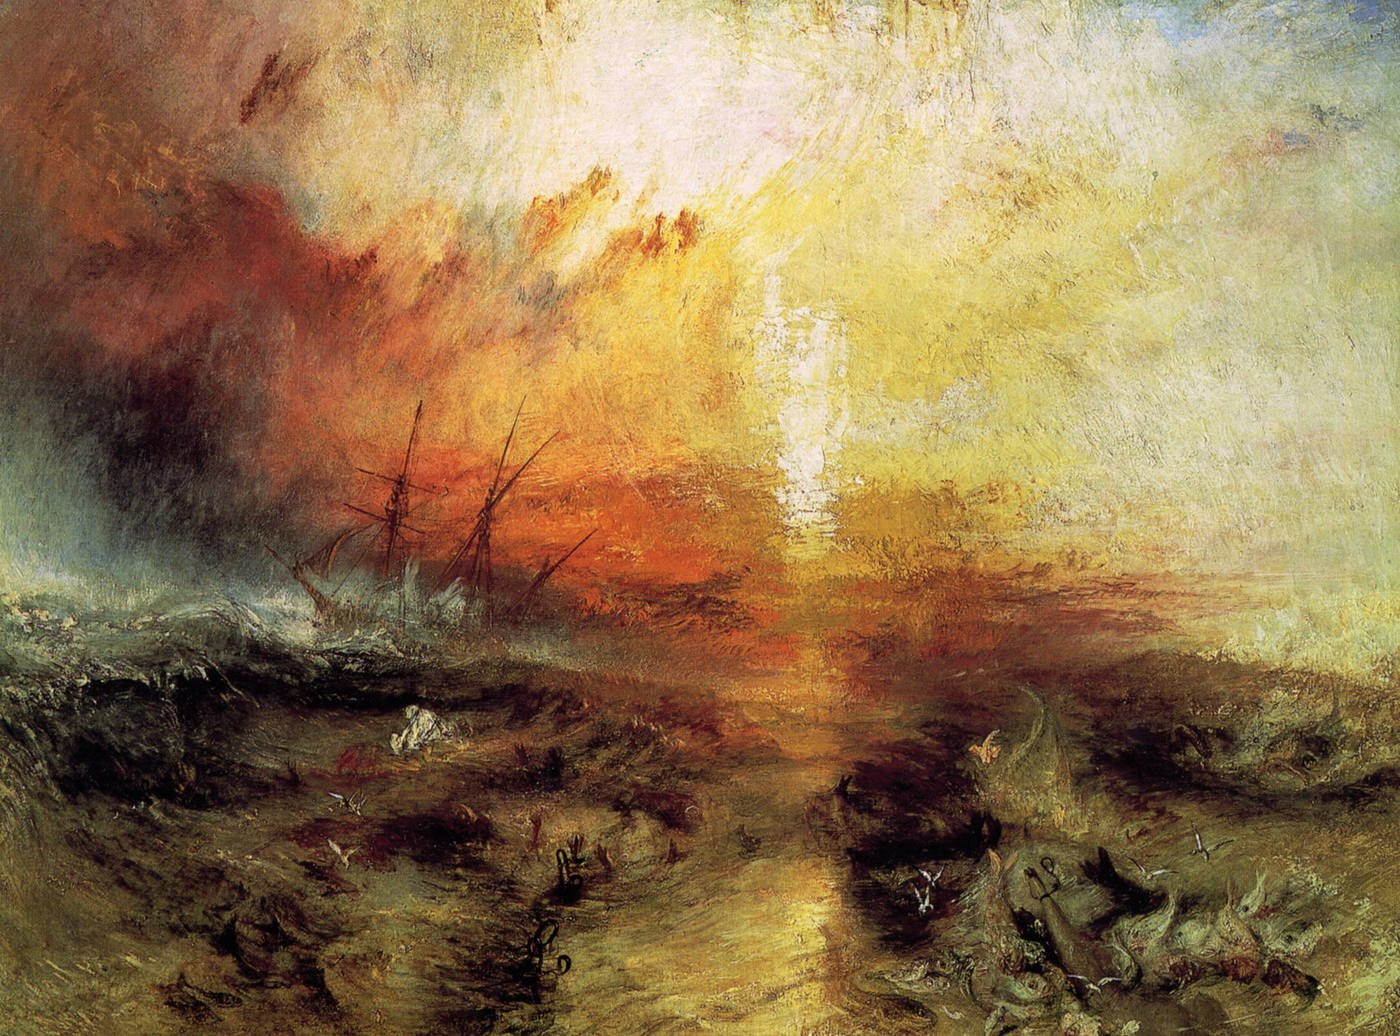 Joseph Mallord William Turner background